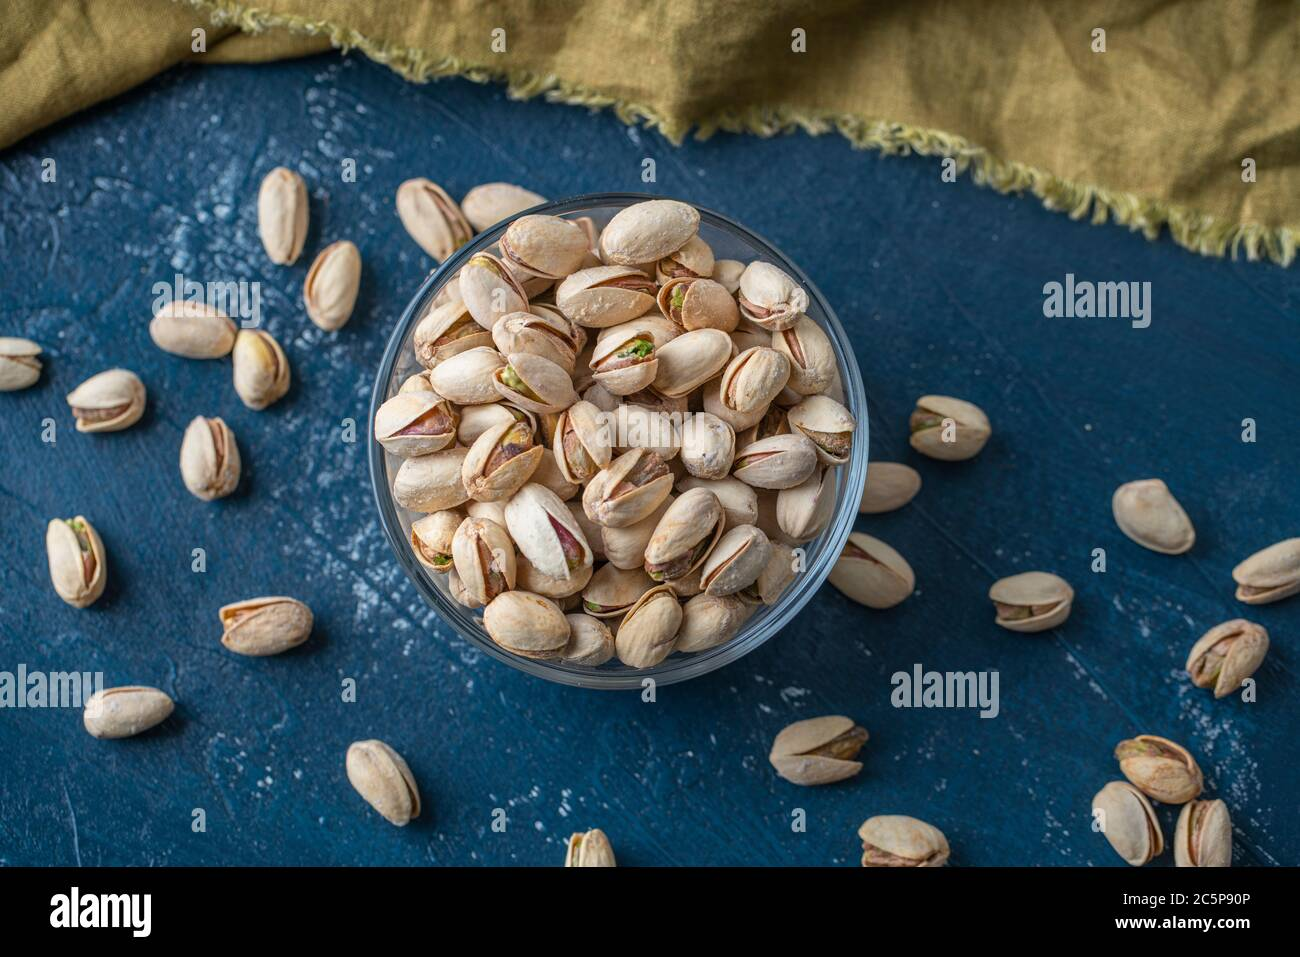 Roasted And Salted Pistachios In Glass Bowl Stock Photo